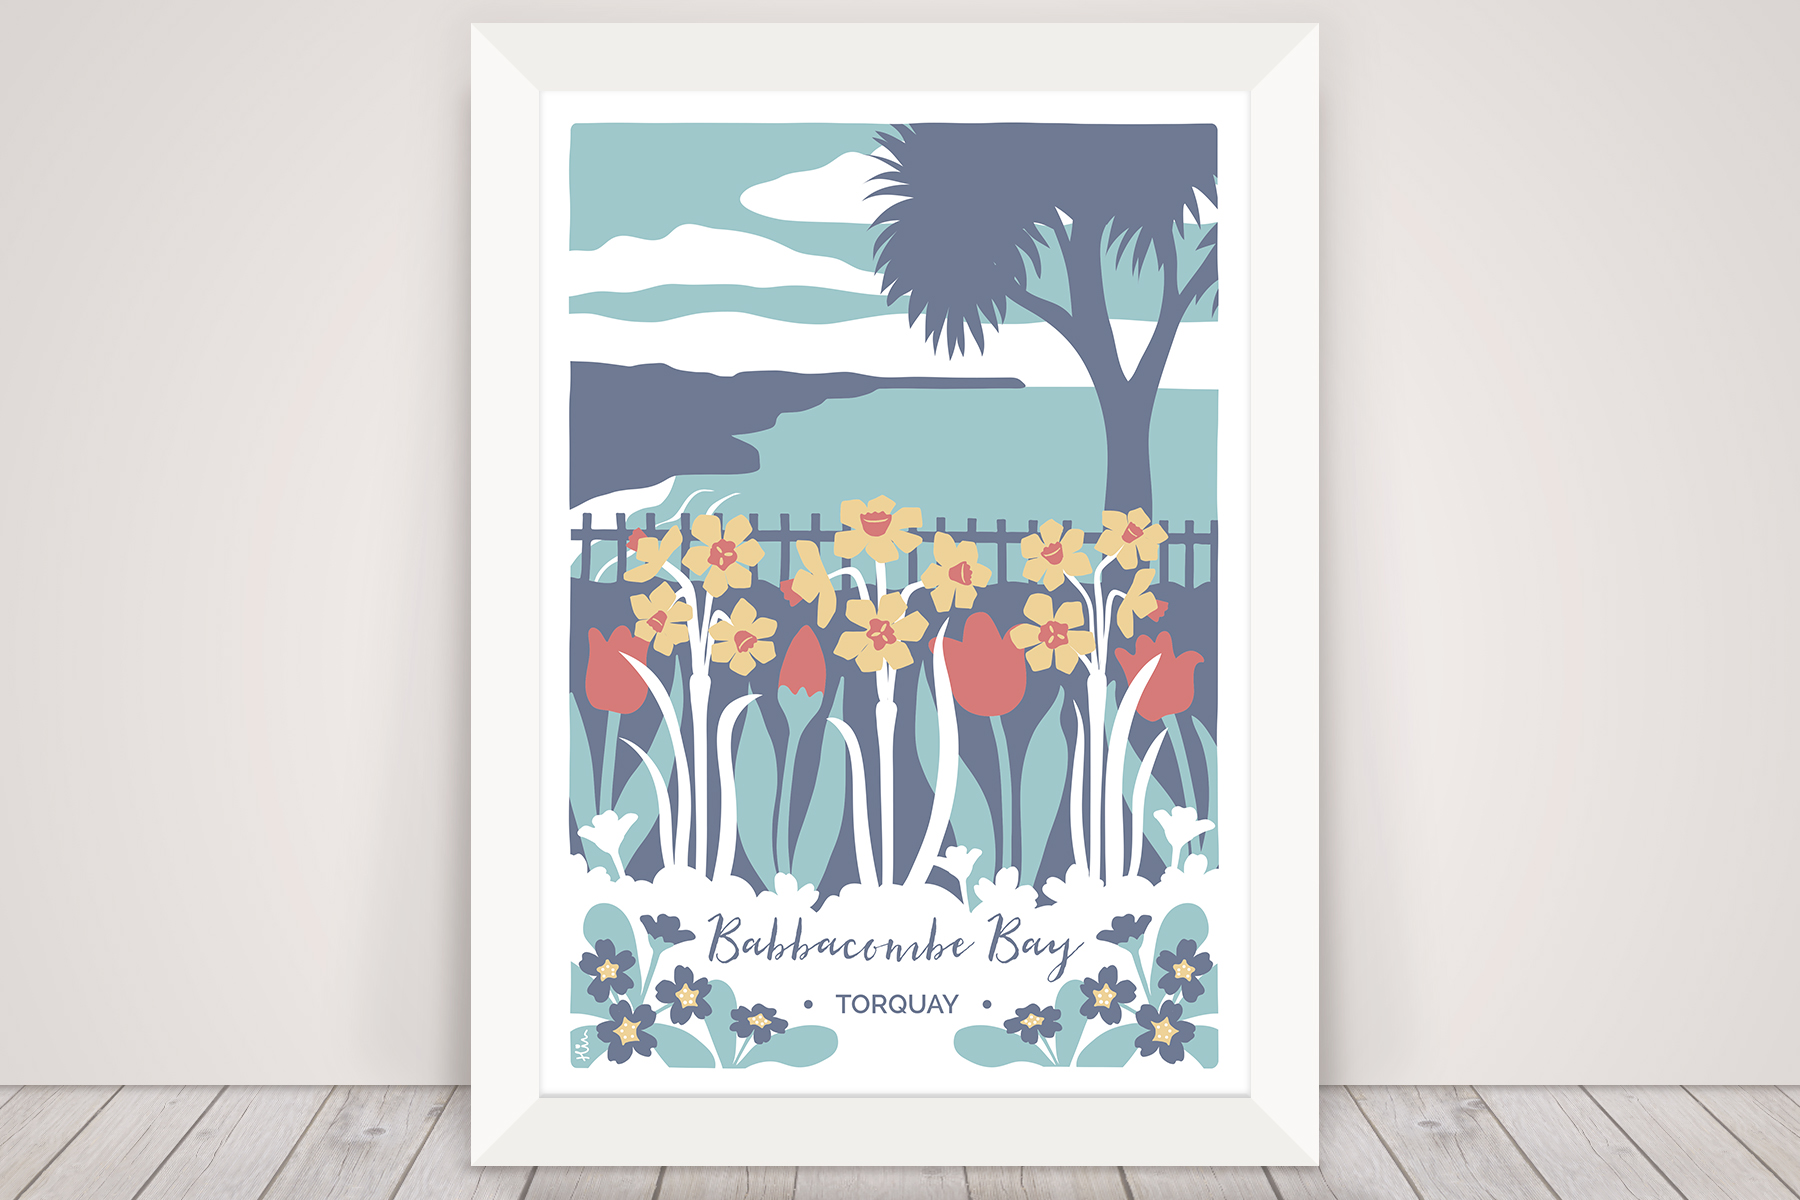 Digital illustration of Babbaombe in Torquay. Coastal scene with palm tree, tulips and daffodils